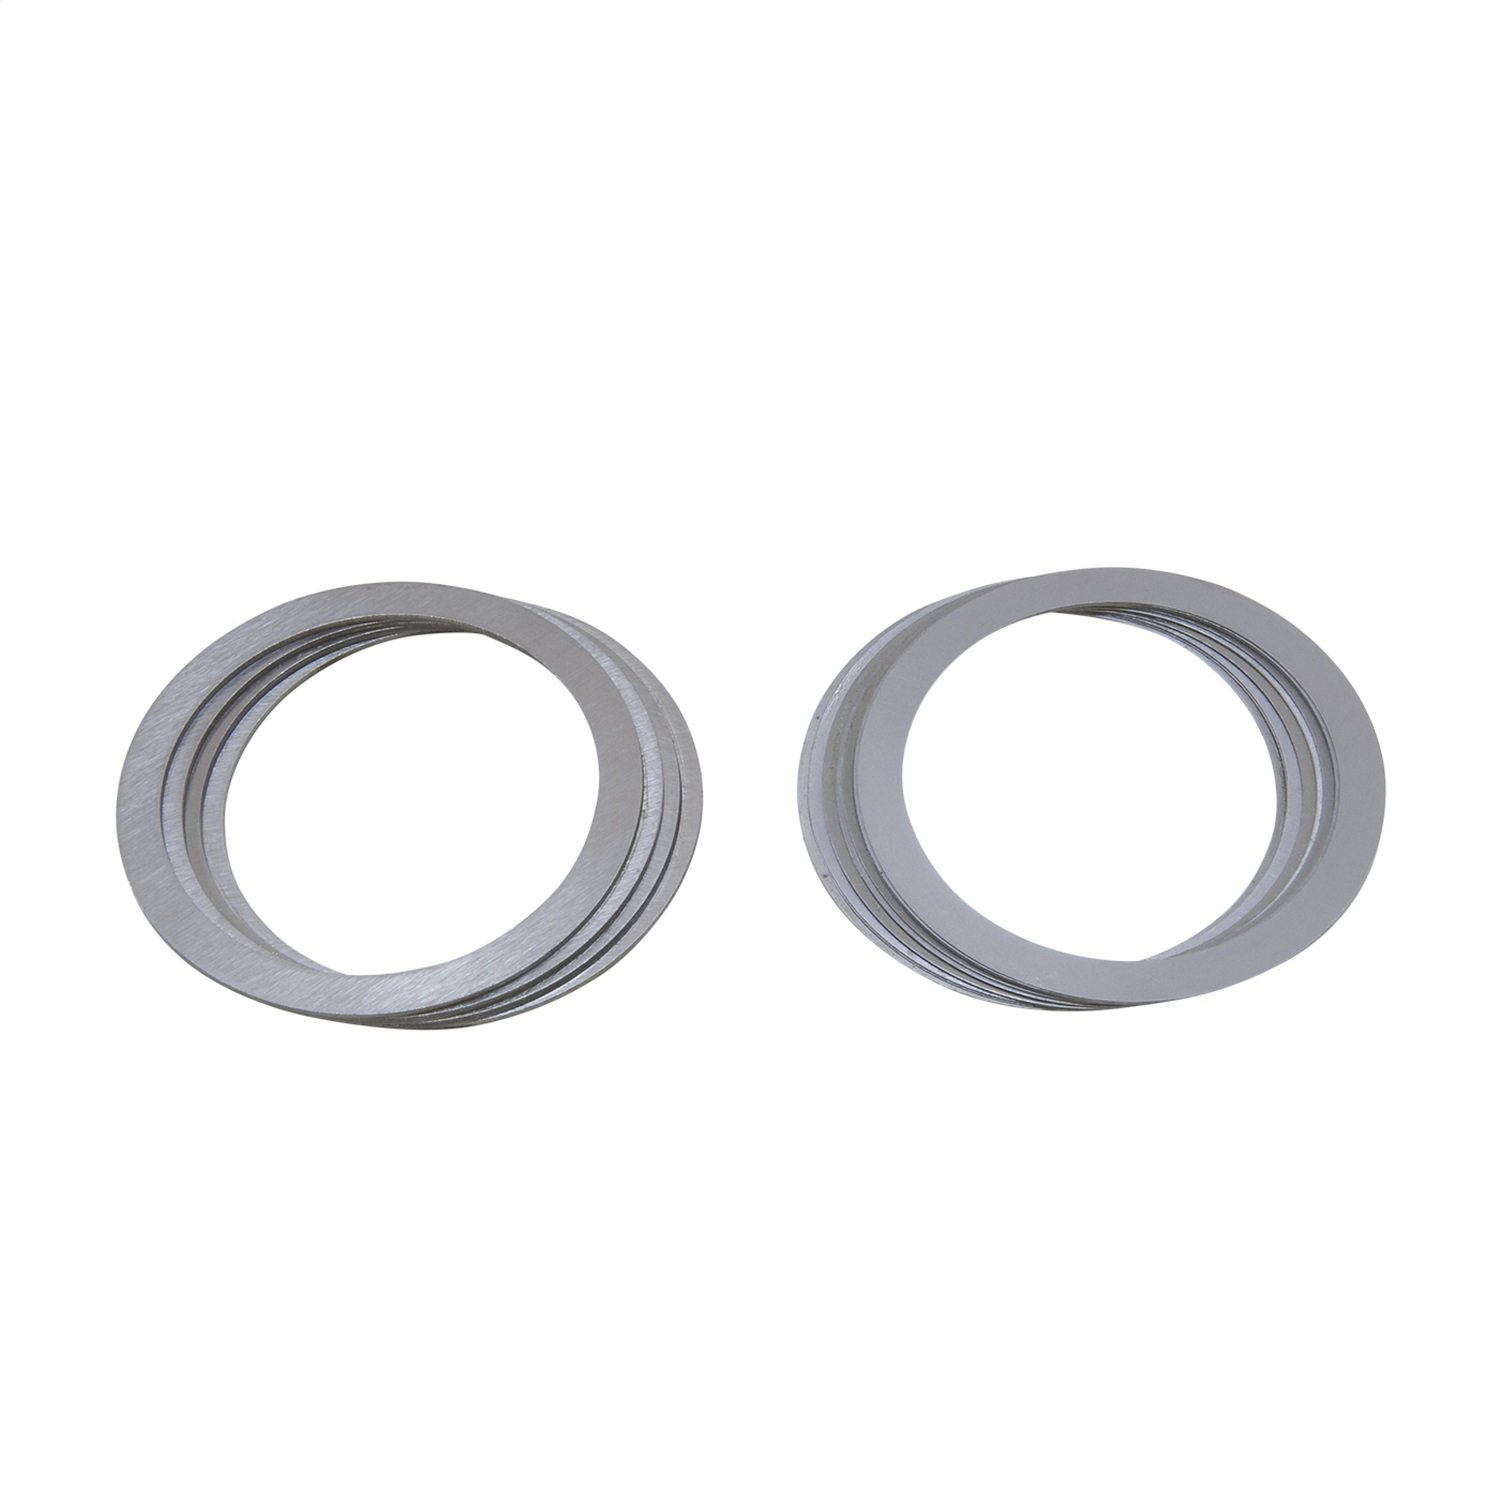 Replacement Carrier Shim Kit for Jeep JK Dana 44 Rear Differential SK 708193 Yukon Gear /& Axle